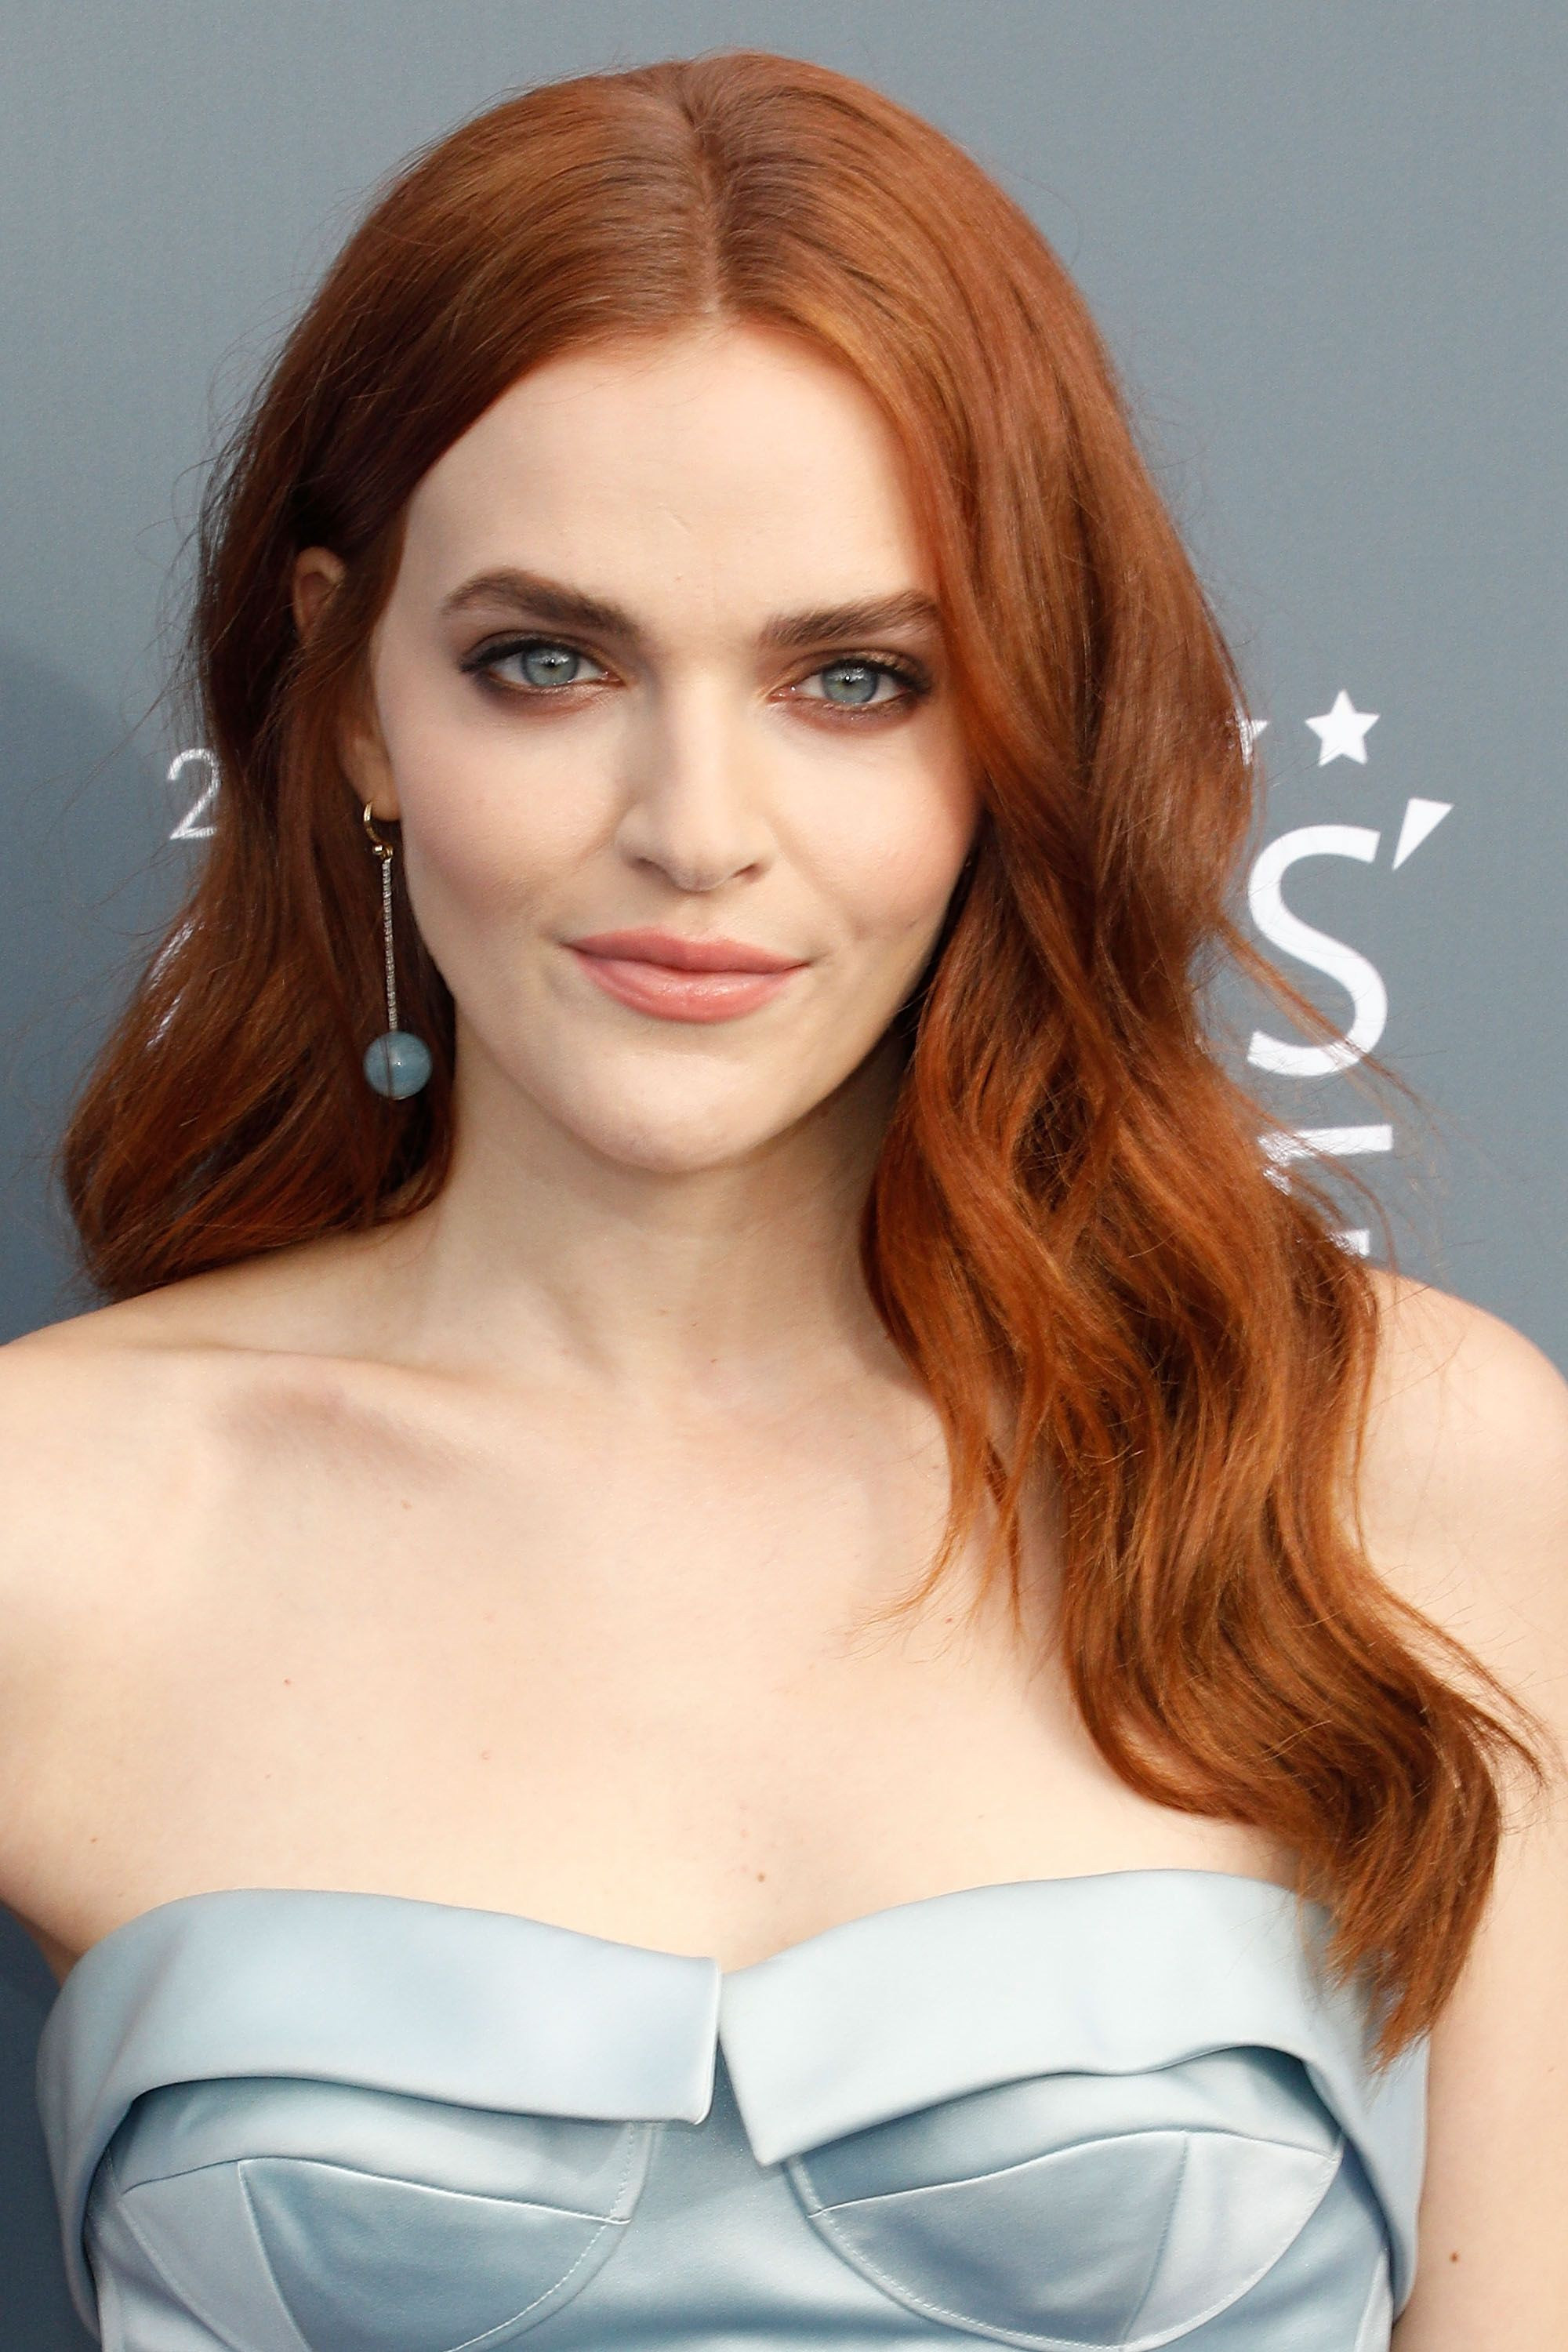 Unique Hair Color Ideas for Long Curly Hair